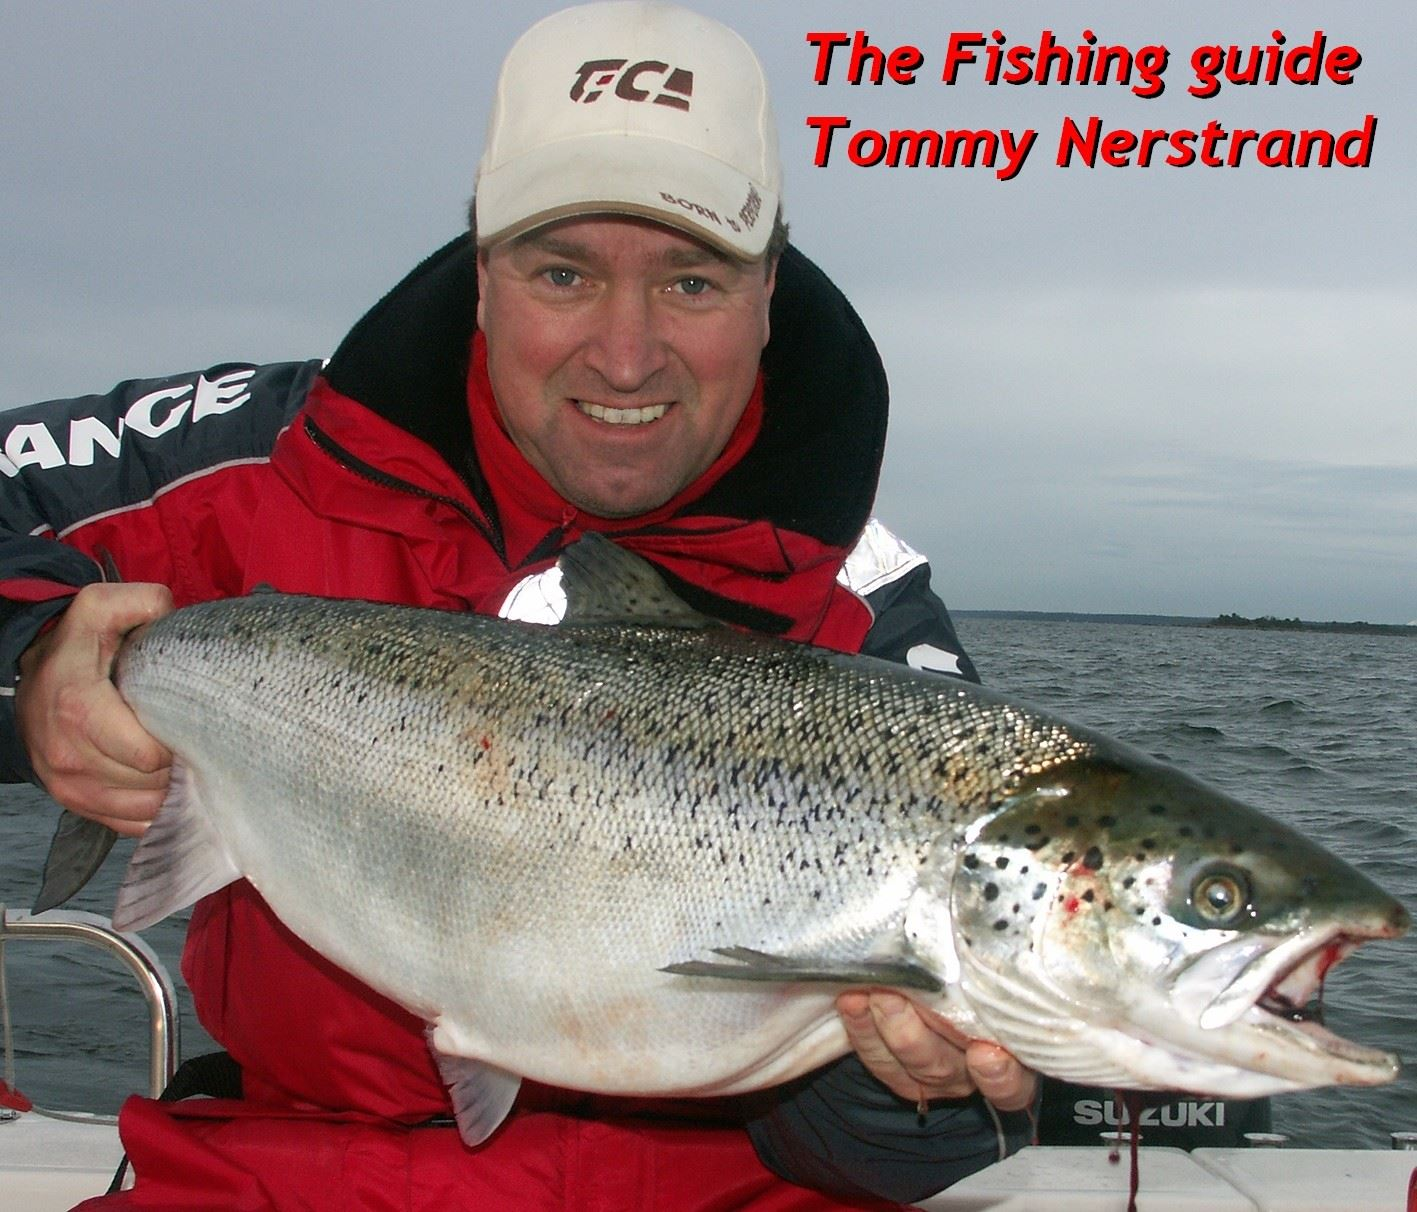 Sportfishing from boat with fishing guide Tommy Nerstrand